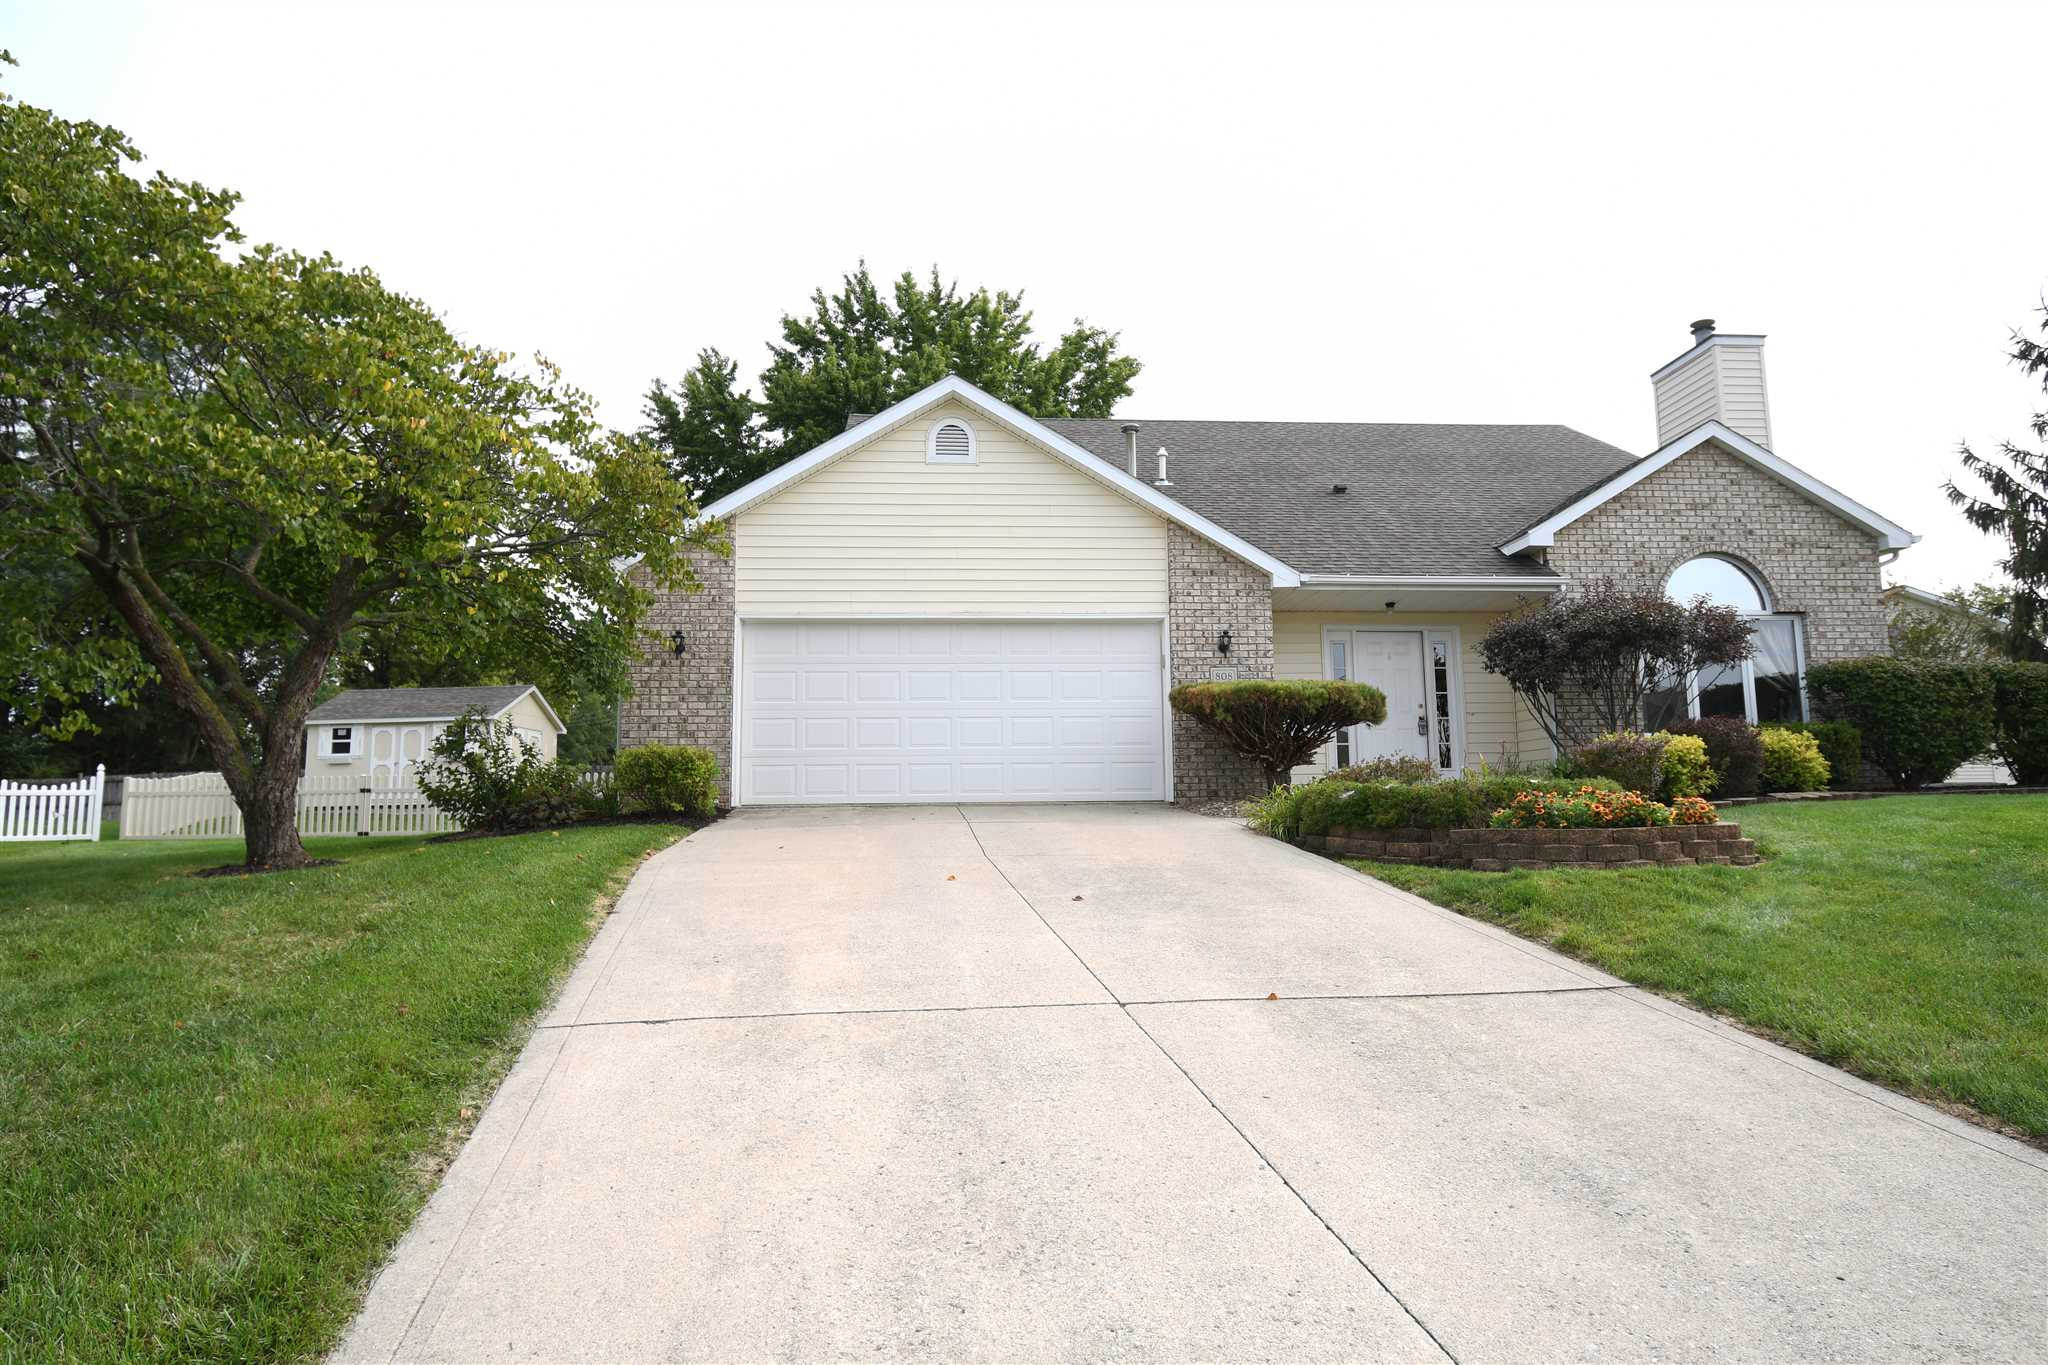 808 S Metzger Circle, South Whitley, IN 46787